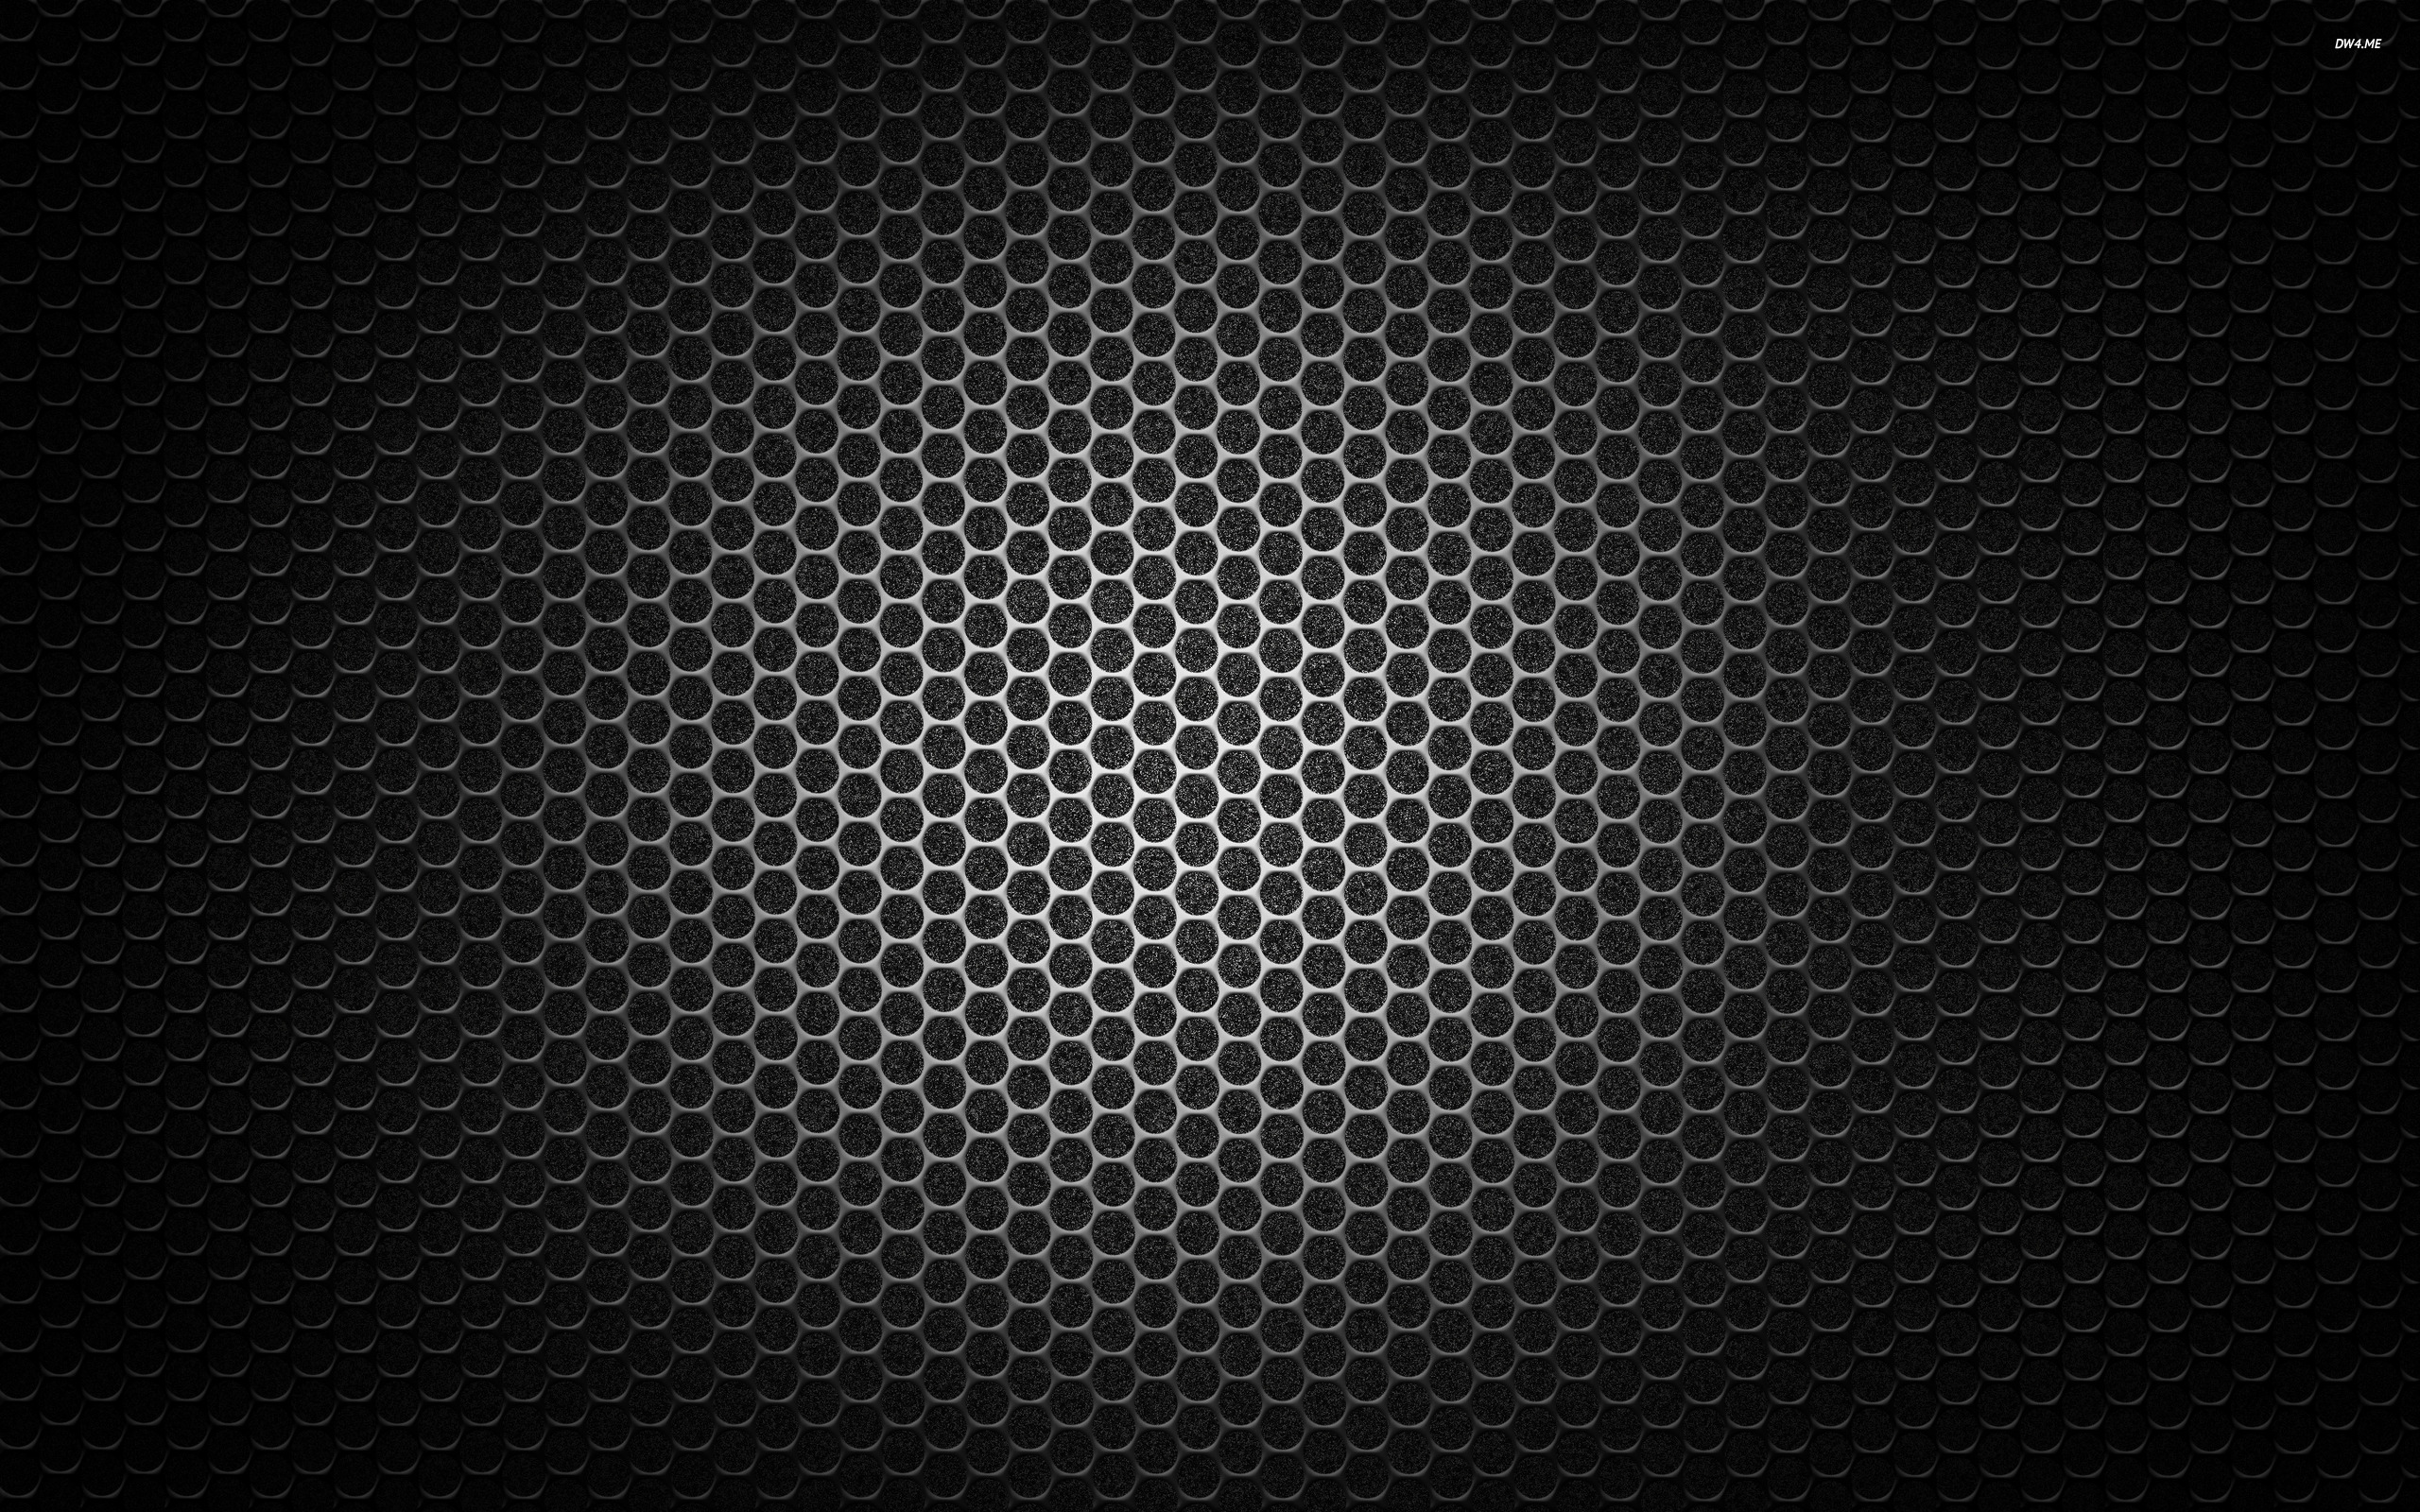 Metallic mesh wallpaper   Digital Art wallpapers   1232 2560x1600